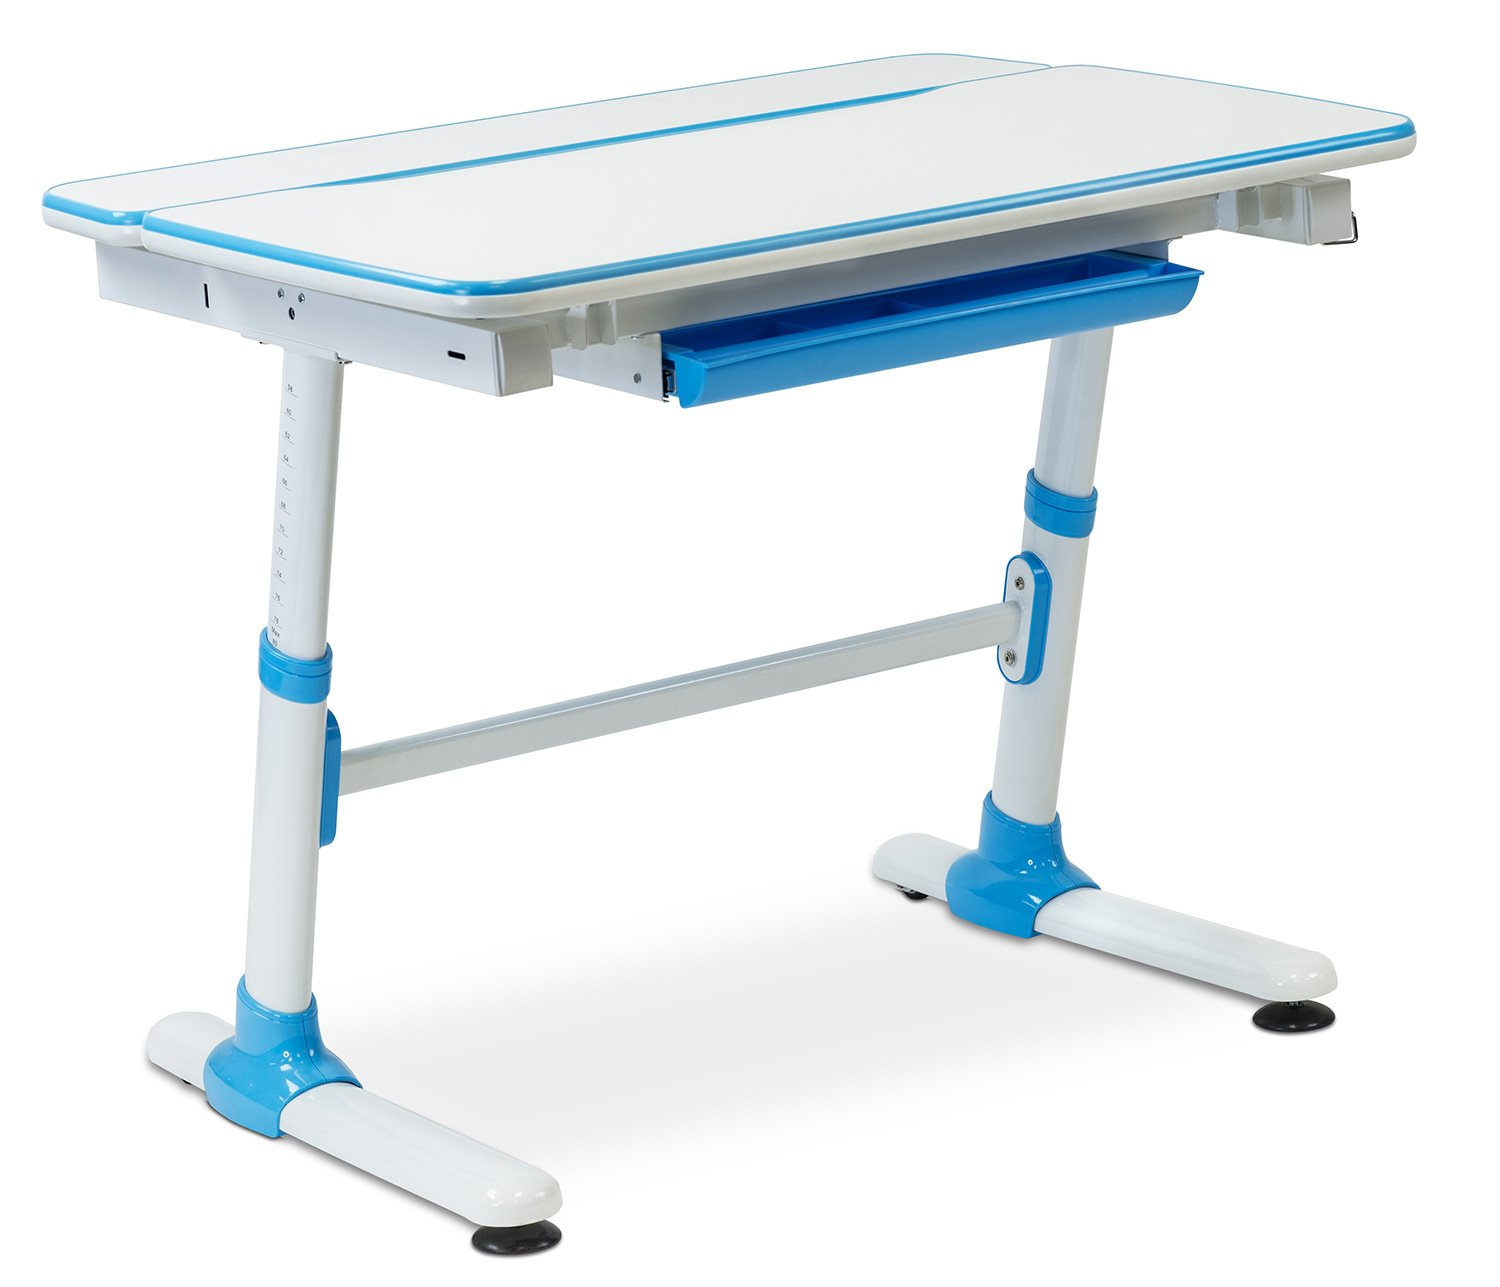 Mount-It! Children's Desk Ages 3 to 12, Kids School Workstation, 39 Inch Wide Height Adjustable Study Desk, Tilting Desktop and Drawer, White/Blue